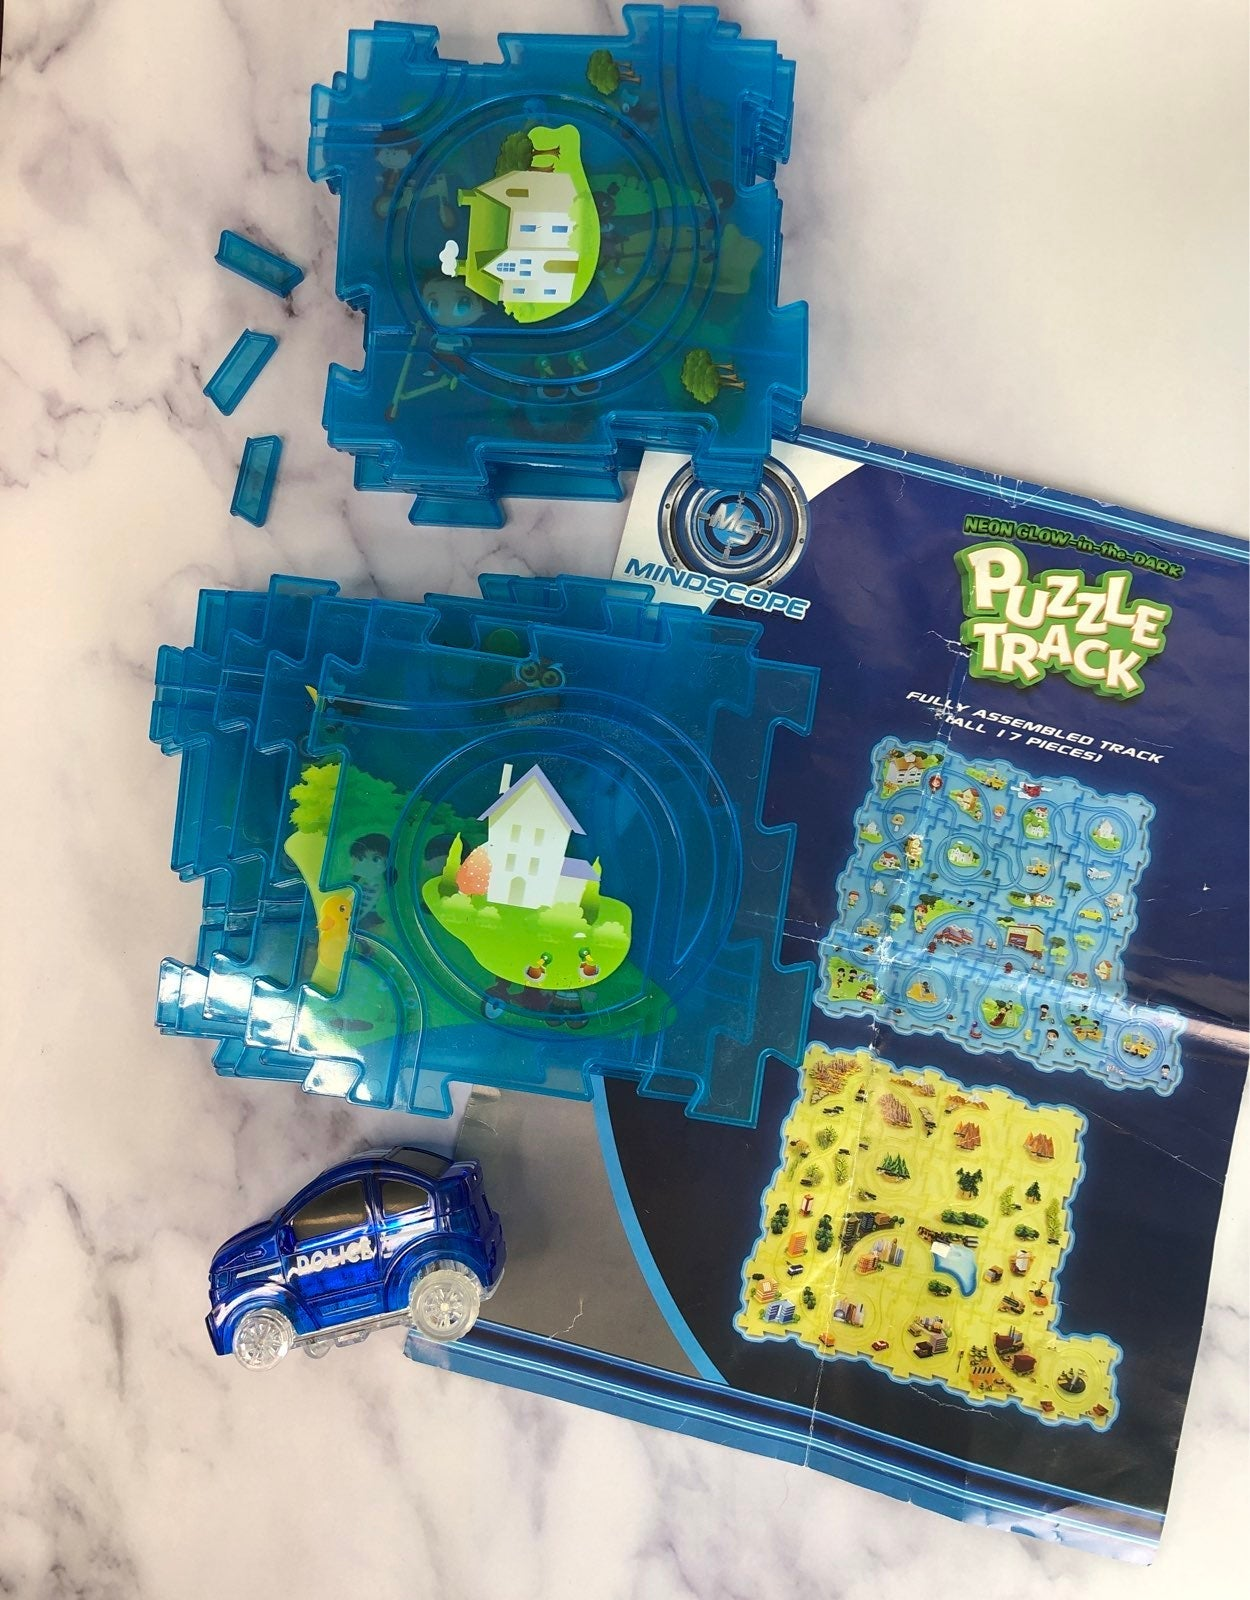 Puzzle track glow in the dark tested